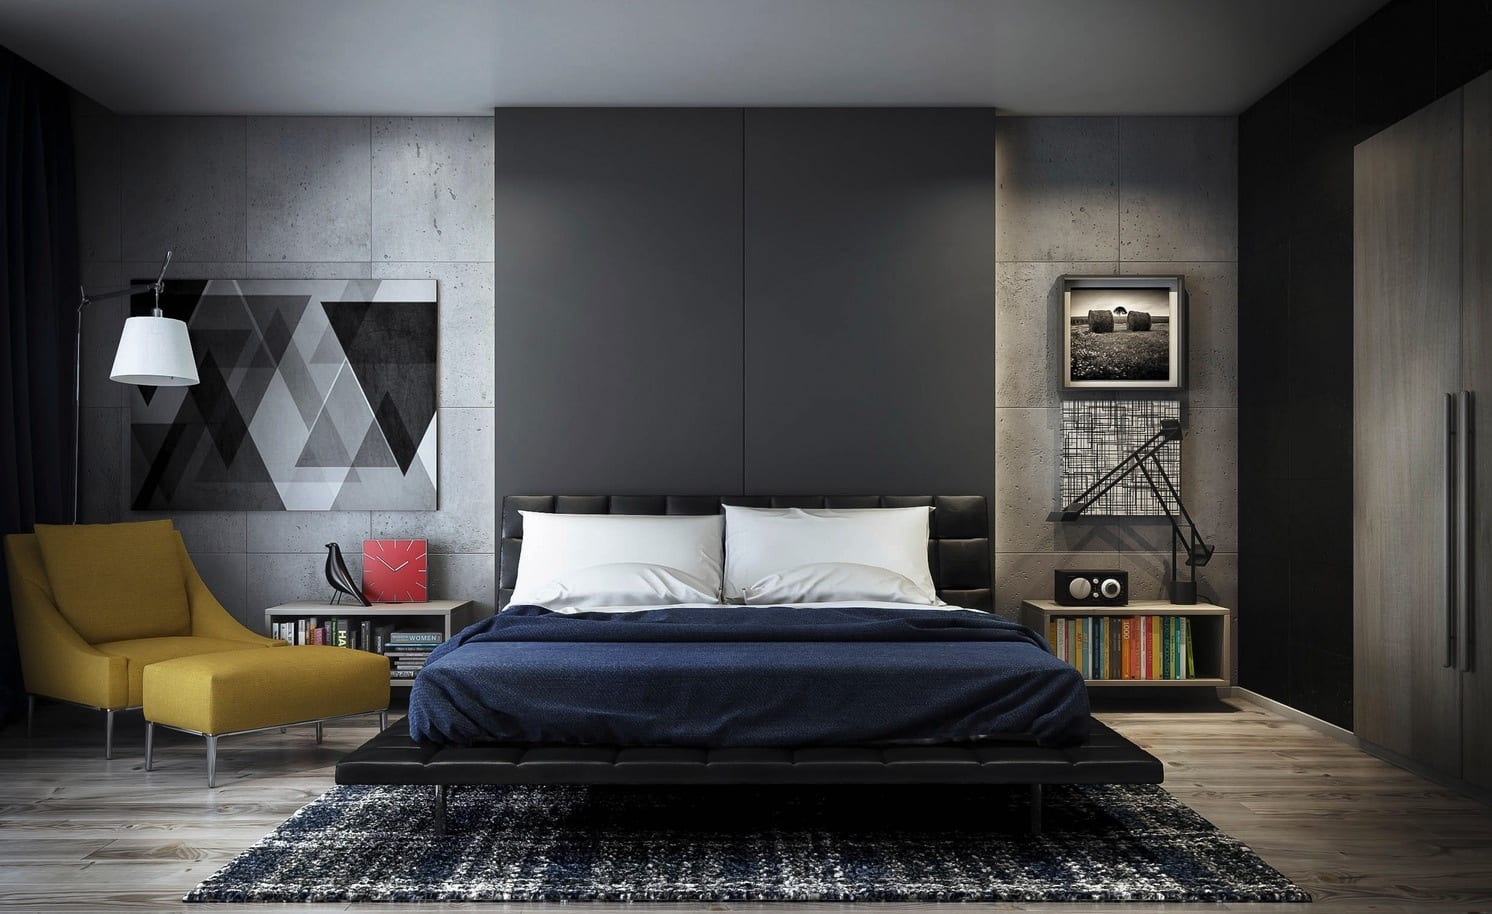 luxus interior ideen mit beton inspirationen f r. Black Bedroom Furniture Sets. Home Design Ideas